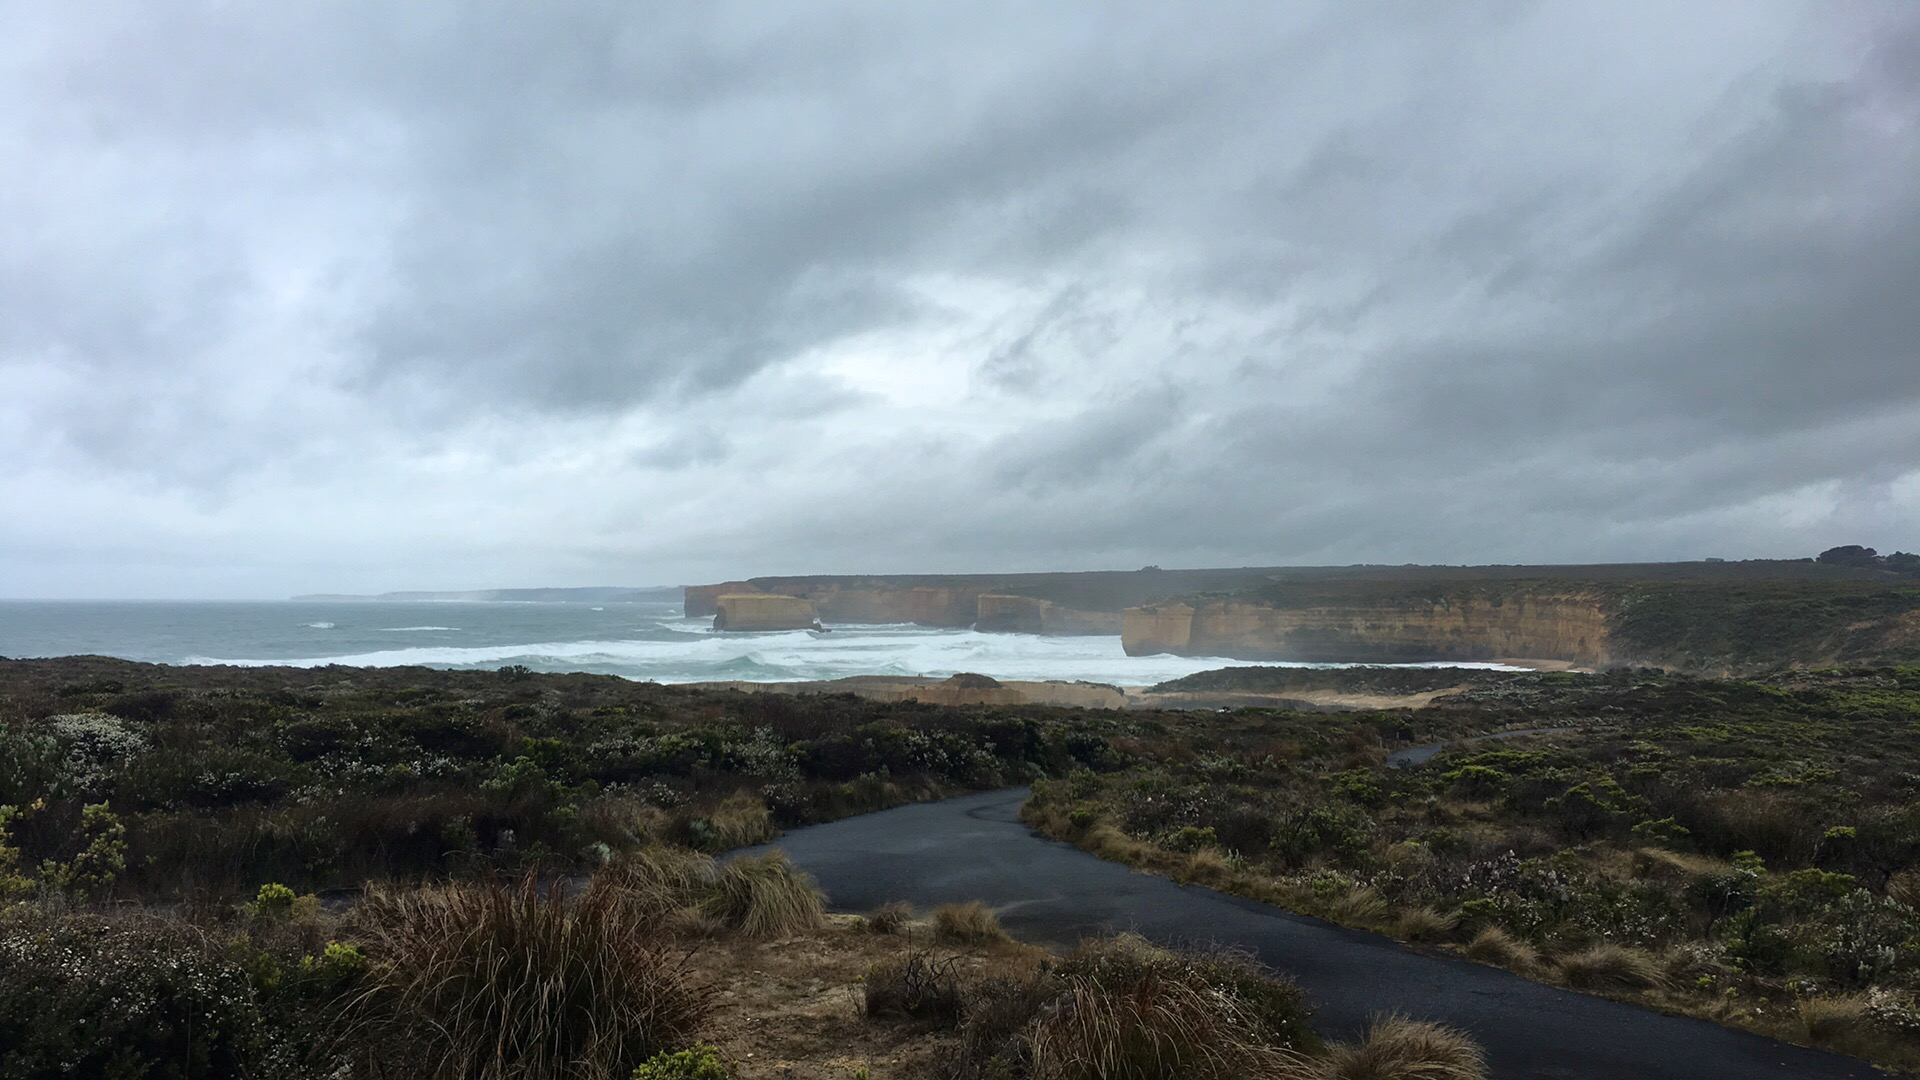 A cold and rainy day on the Great Ocean Road, Australia